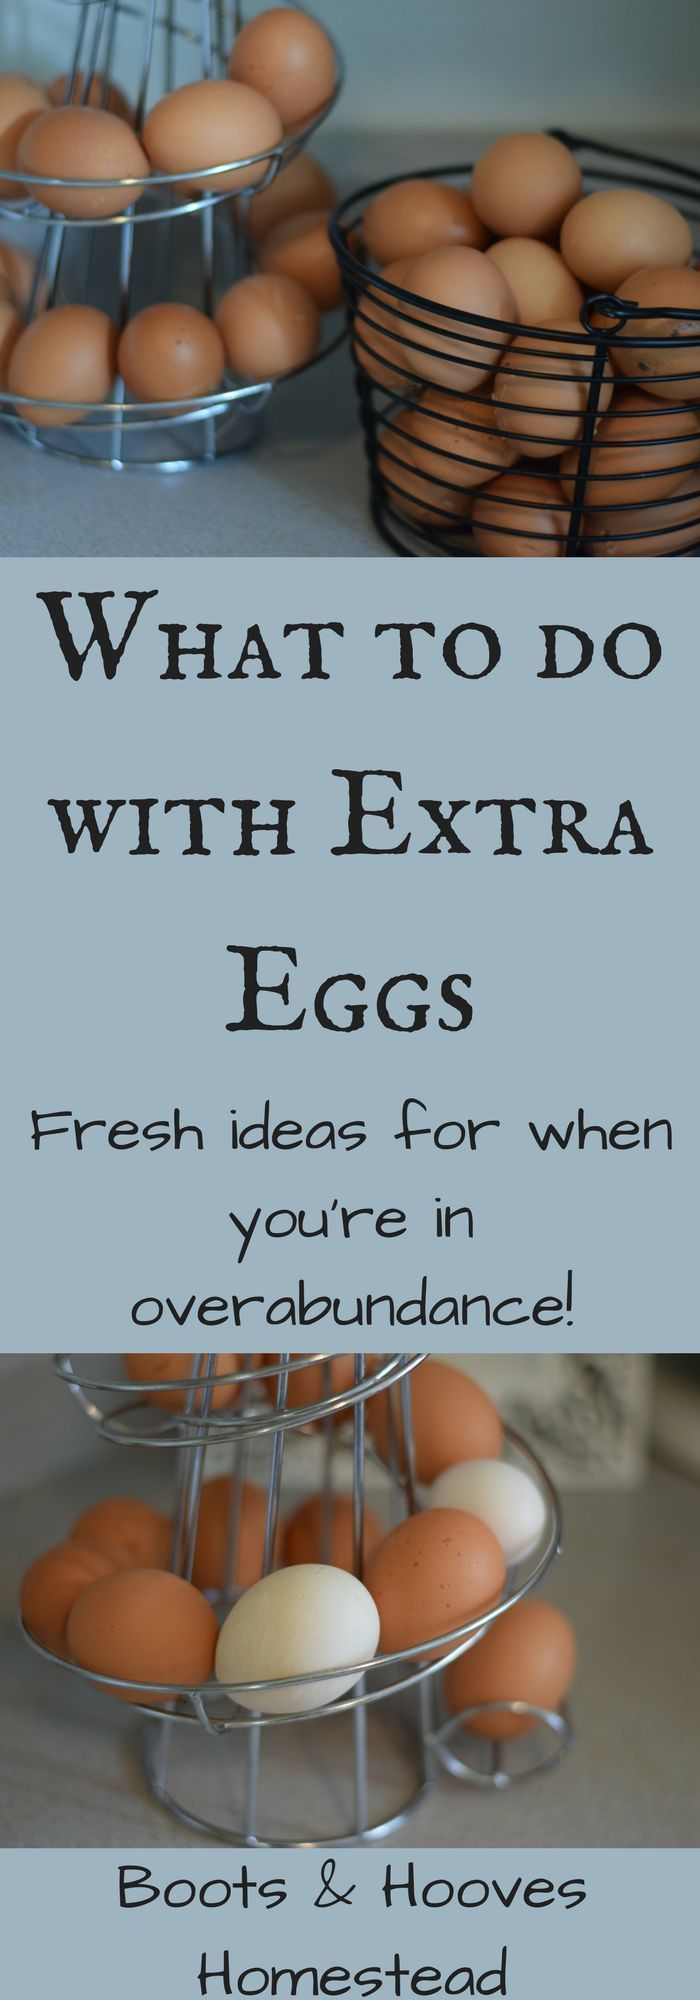 What to do with Extra Eggs - Boots & Hooves Homestead